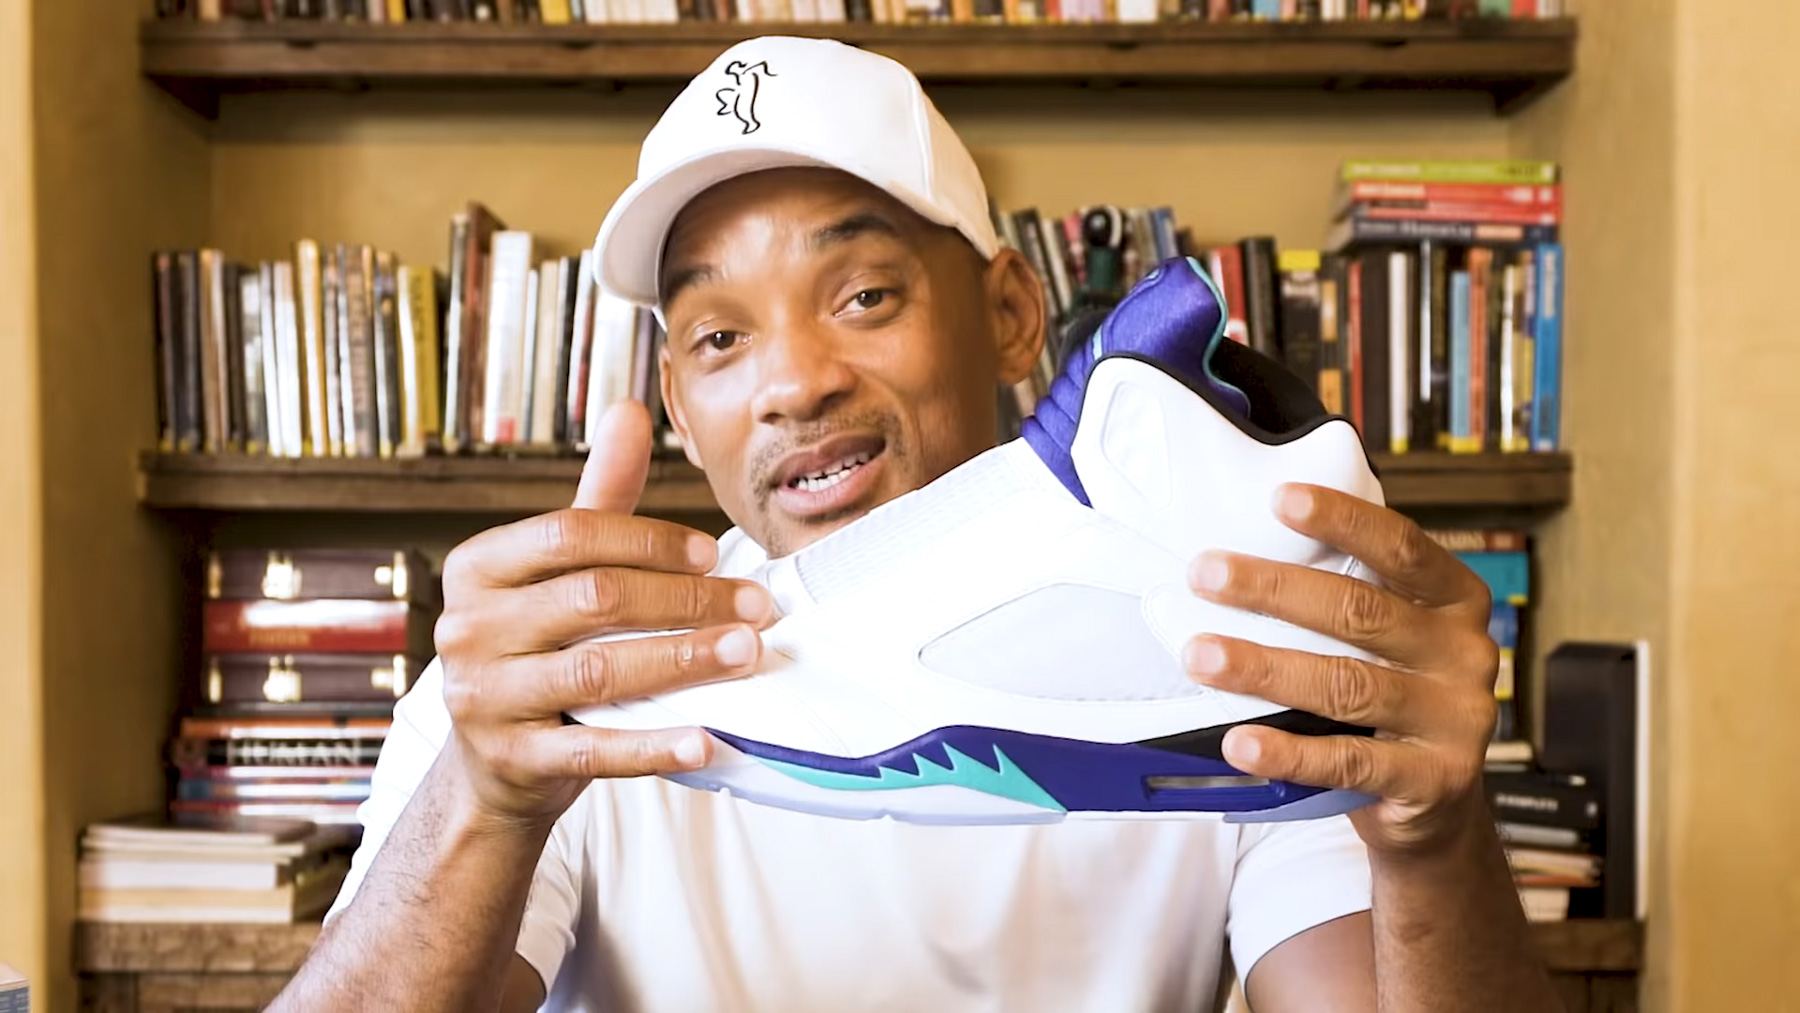 4b48c97d4d3 will smith unboxing air jordan 5 fresh prince of bel air 2018 footwear  jordan brand michael